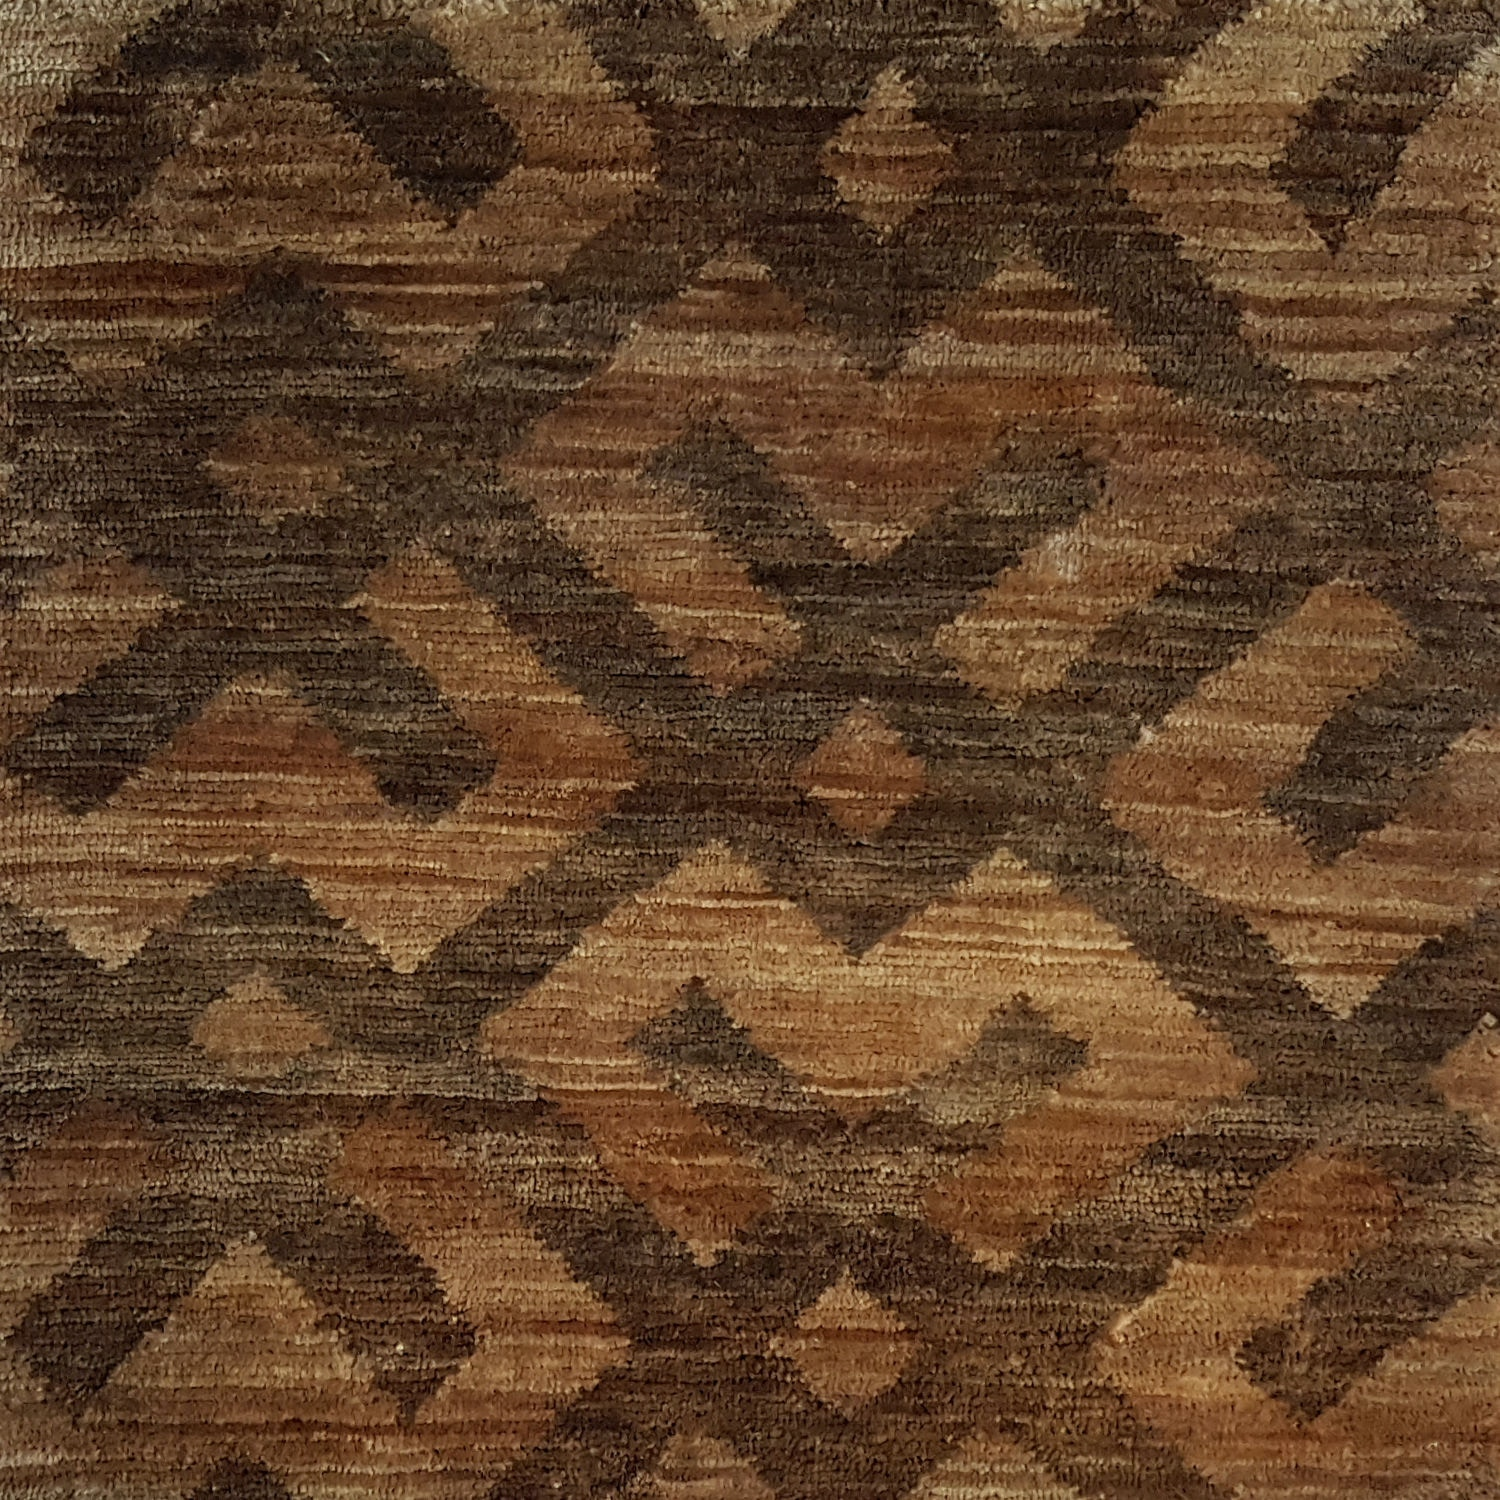 Brunschwig Carpet V2-215/Sp.Brown Gold CB-102144.BROWN GOLD.0